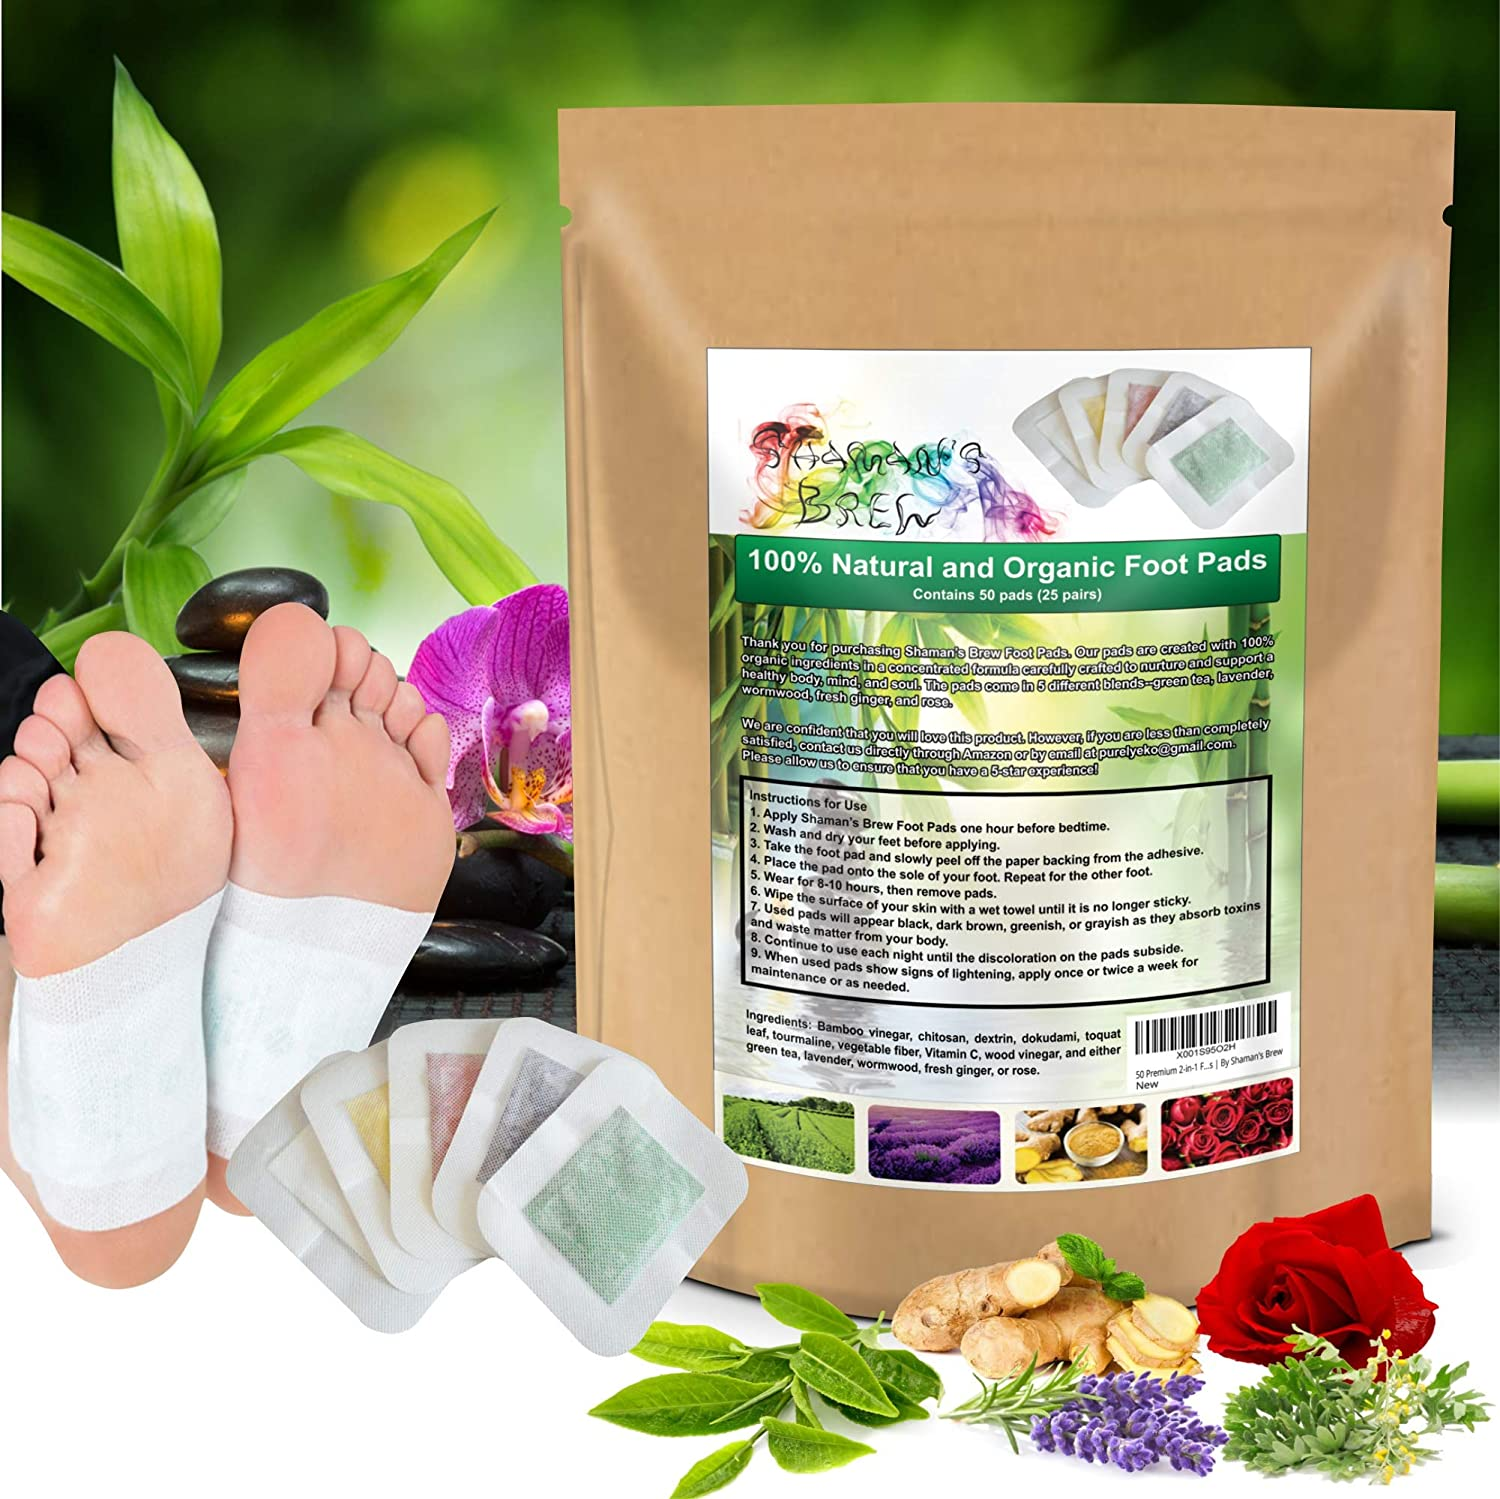 50 Premium 2-in-1 Foot Pads | Concentrated Formula | for Foot Care, Pain Relief, Relaxation, General Well-Being | 5 Special Blends | by Shaman's Brew: Health & Personal Care